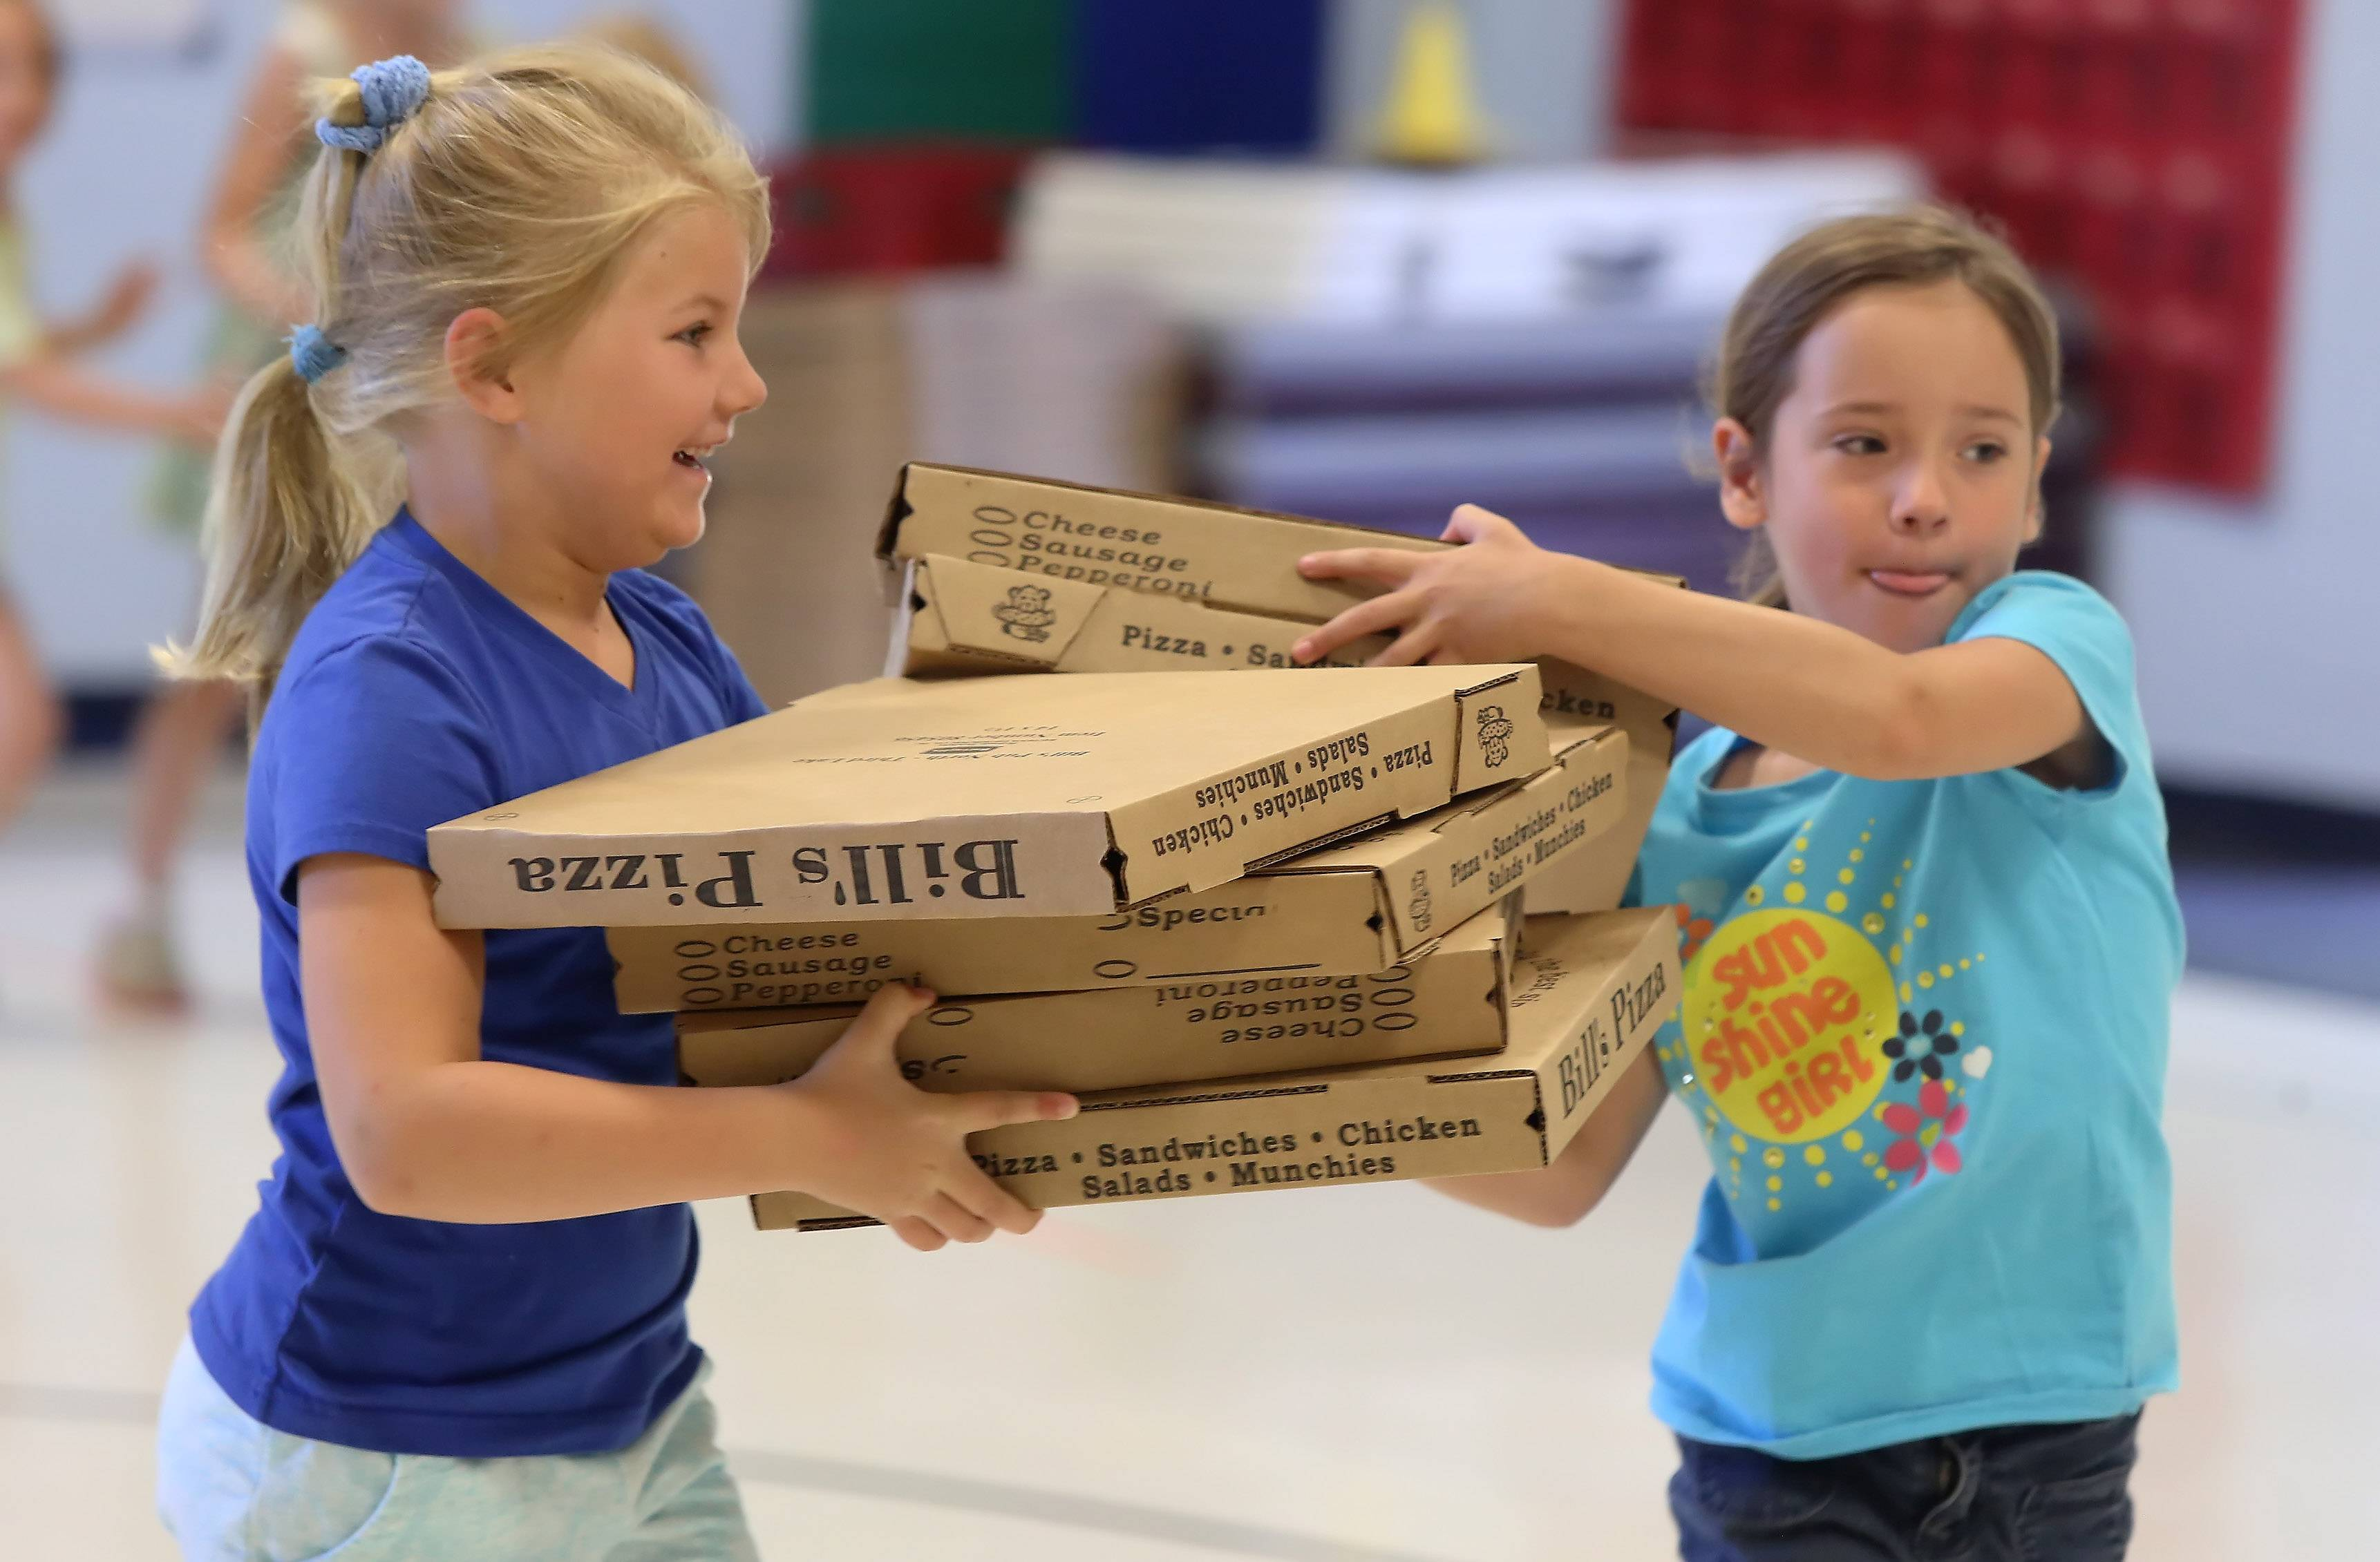 Kindergartners Jessica Sadowska, left, and Annie Lock, compete in the pizza box relays during Field Day on Tuesday at Adler Park School in Libertyville. There were more than 50 parent volunteers to help out with games like potato hockey relays, pizza box relays and the three-legged race.